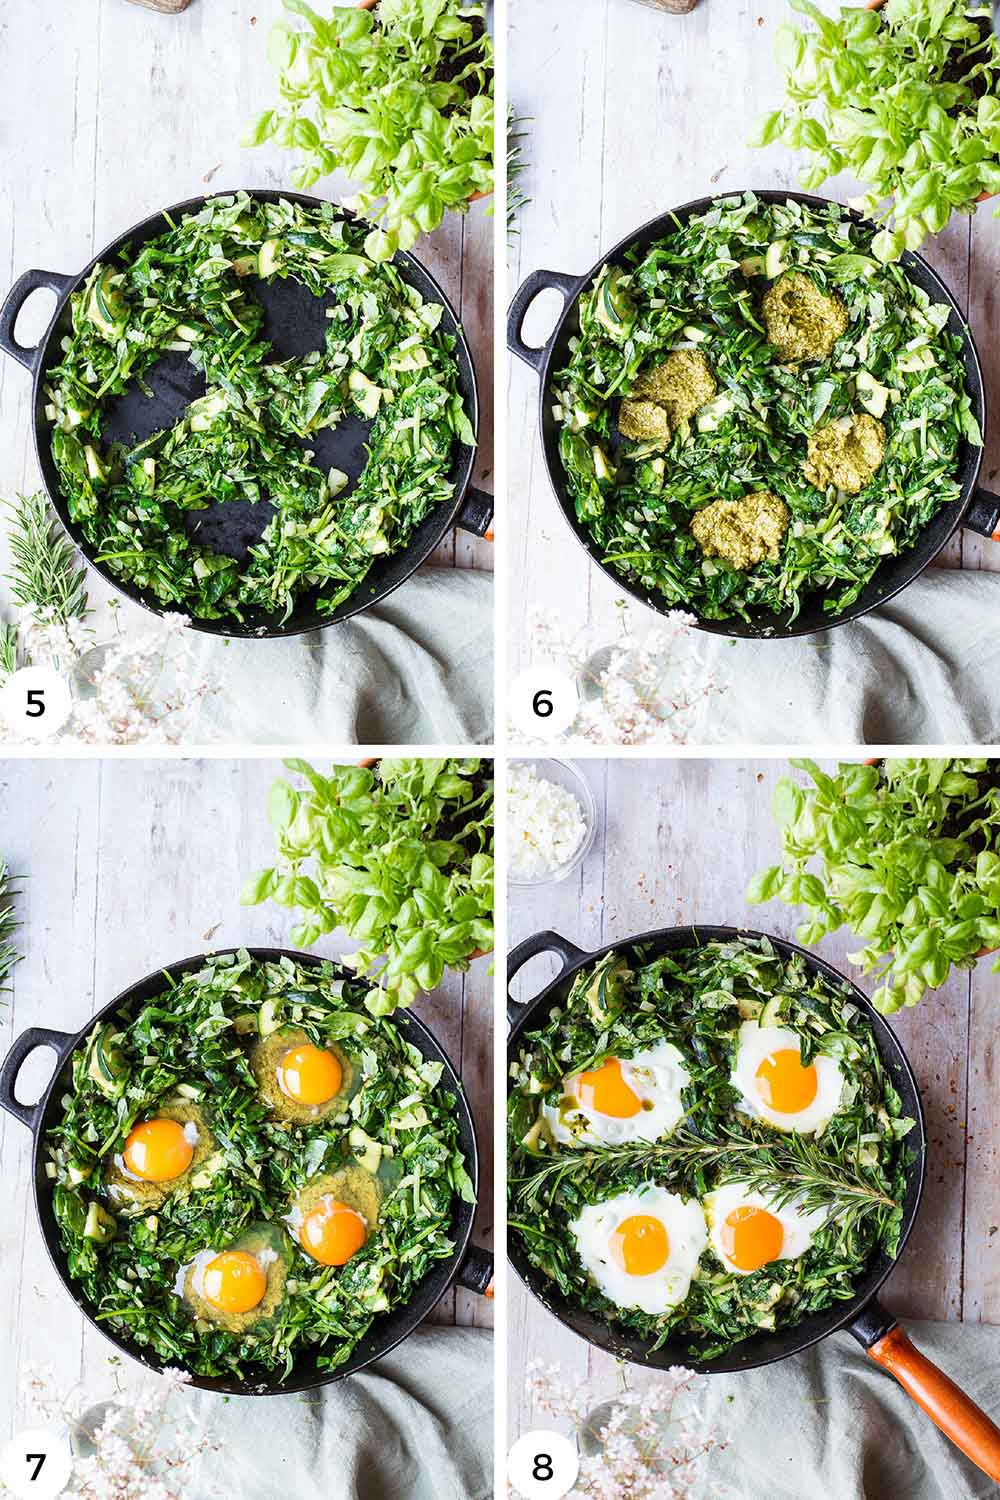 Steps to cook the eggs in the spinach.